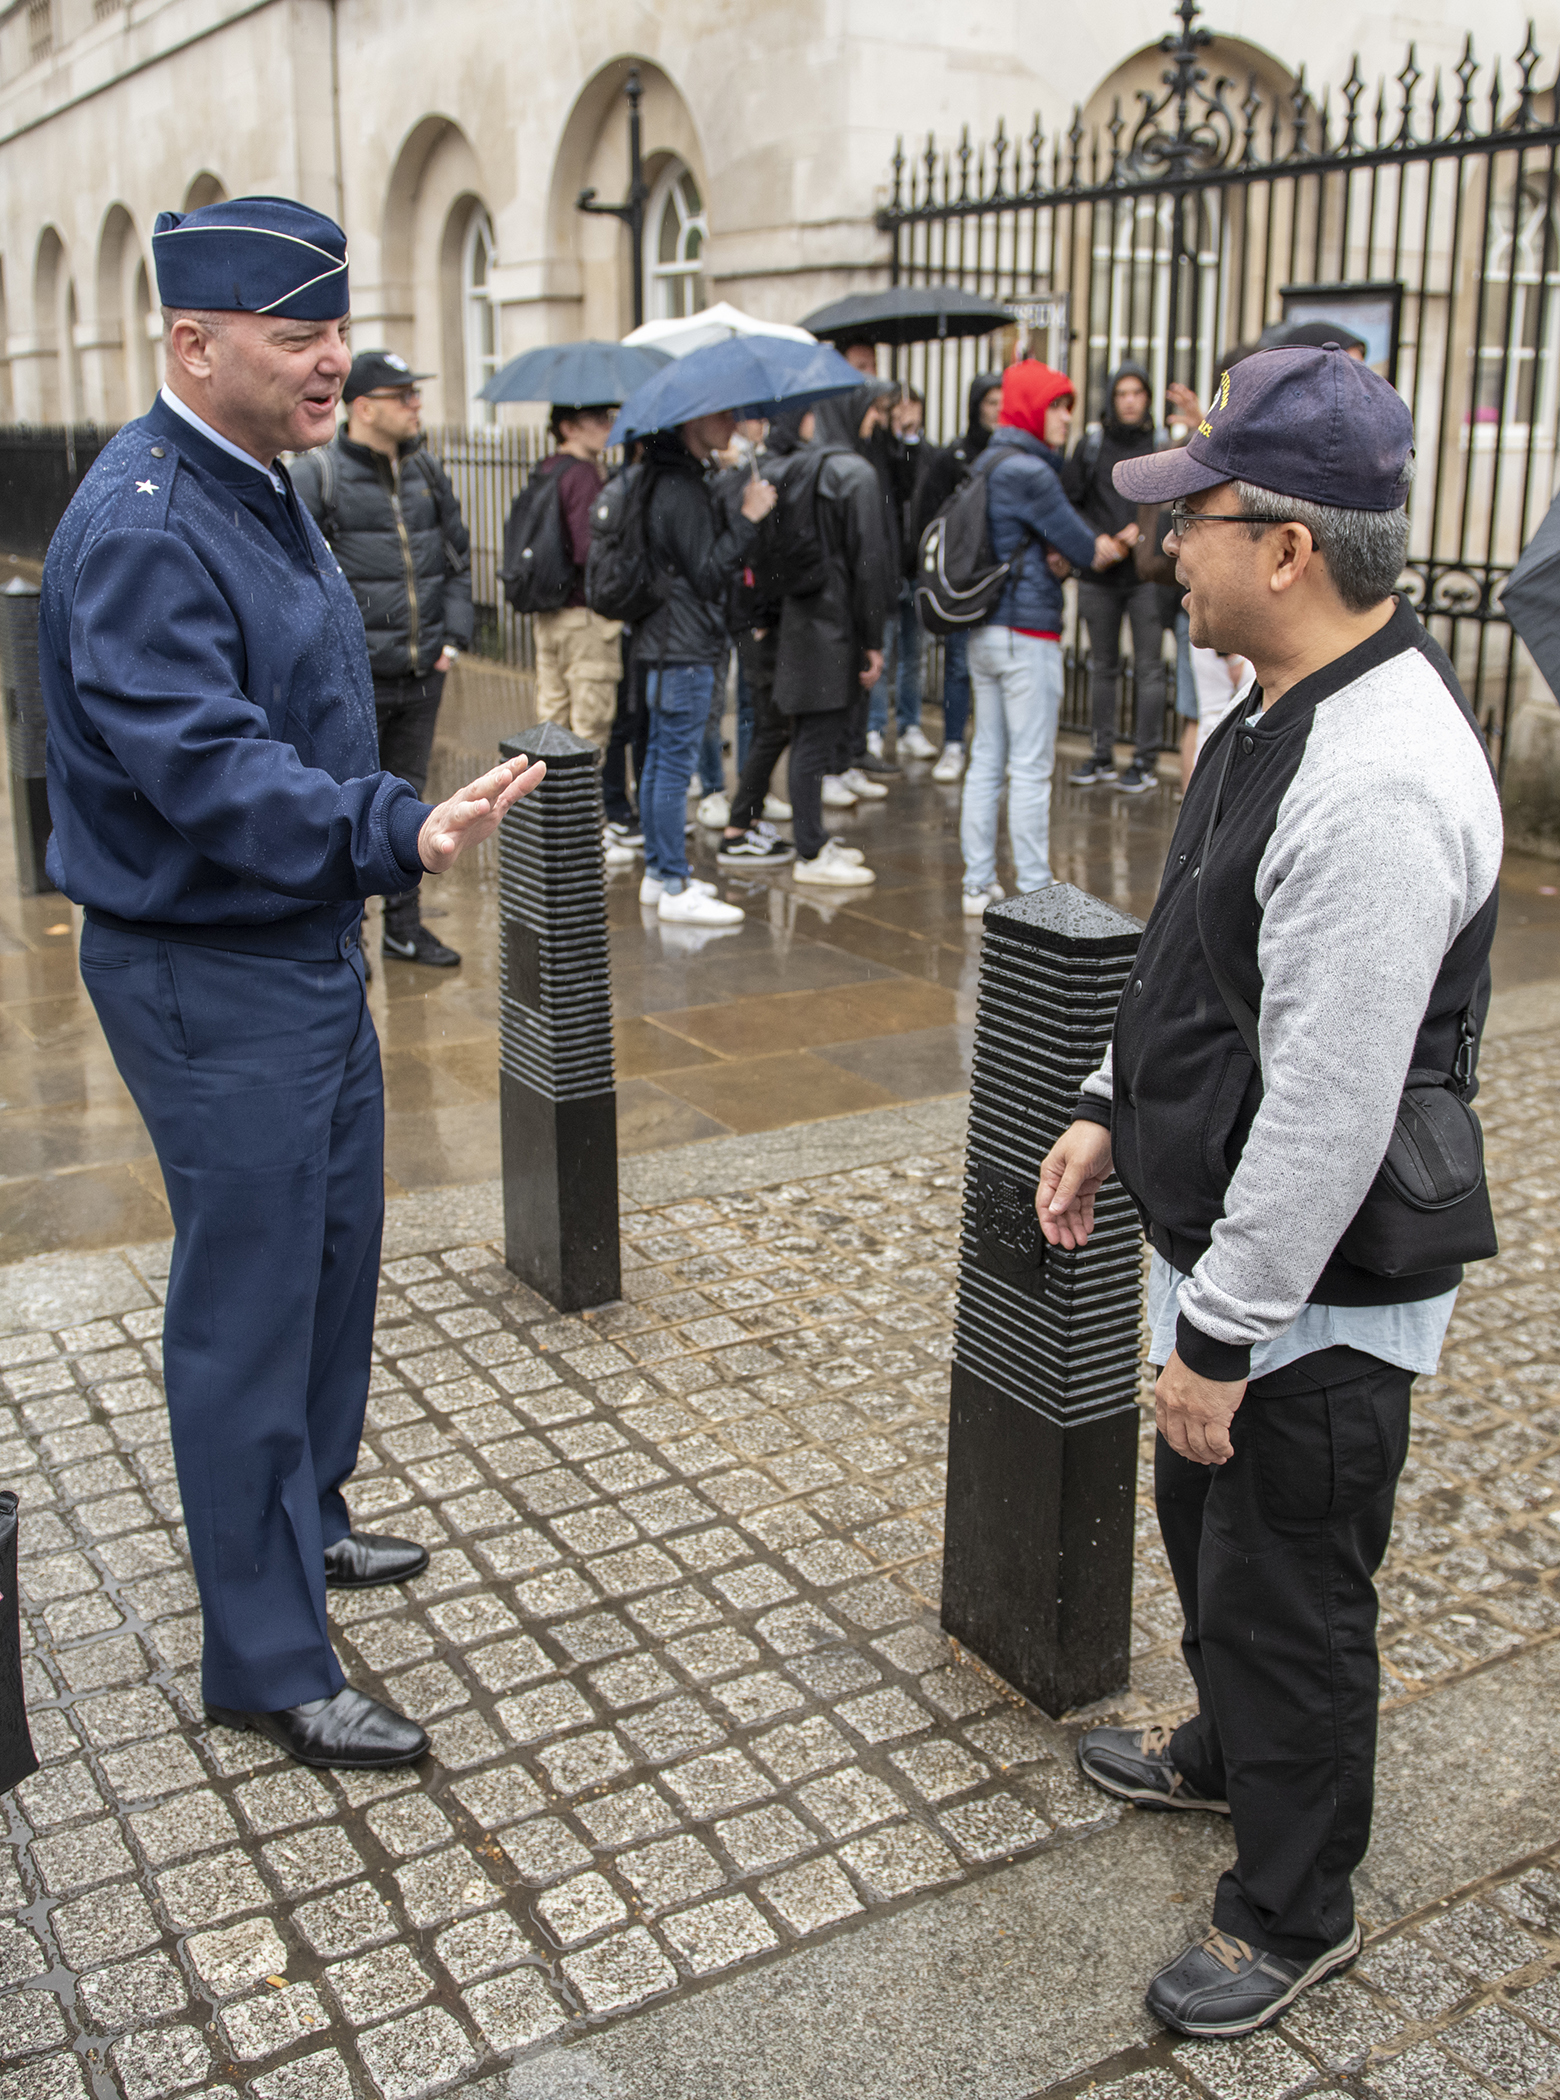 U.S. Air Force Brig. Gen. James R. Kriesel, deputy commanding general of Combined Joint Task Force-Horn of Africa, left, stops to thank a vacationing U.S. Air Force veteran for his service while walking near 10th Downing Street in London, June 7, 2019. Kriesel visited the U.K. to build relations with leaders across the Ministry of Defense and familiarize himself with the partner nation's information exchange policies, which is mission essential in support of national objectives. (U.S. Air Force photo by Tech. Sgt. Shawn Nickel)